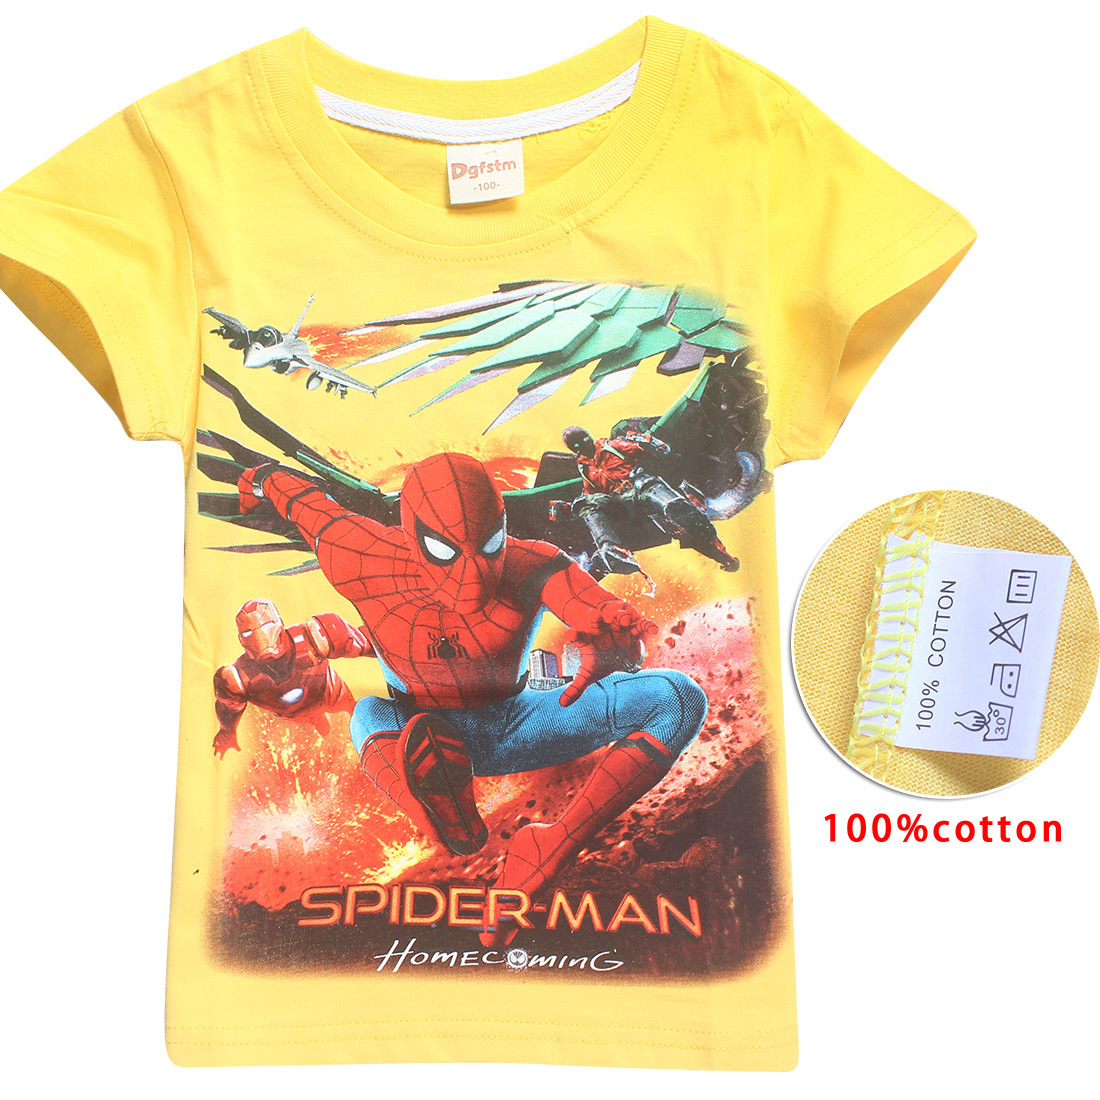 Spider-man Short Sleeve t shirt Batman v Superman Movies Printing Boys Clothes T-Shirts For Boys Kids Baby Children's Clothing